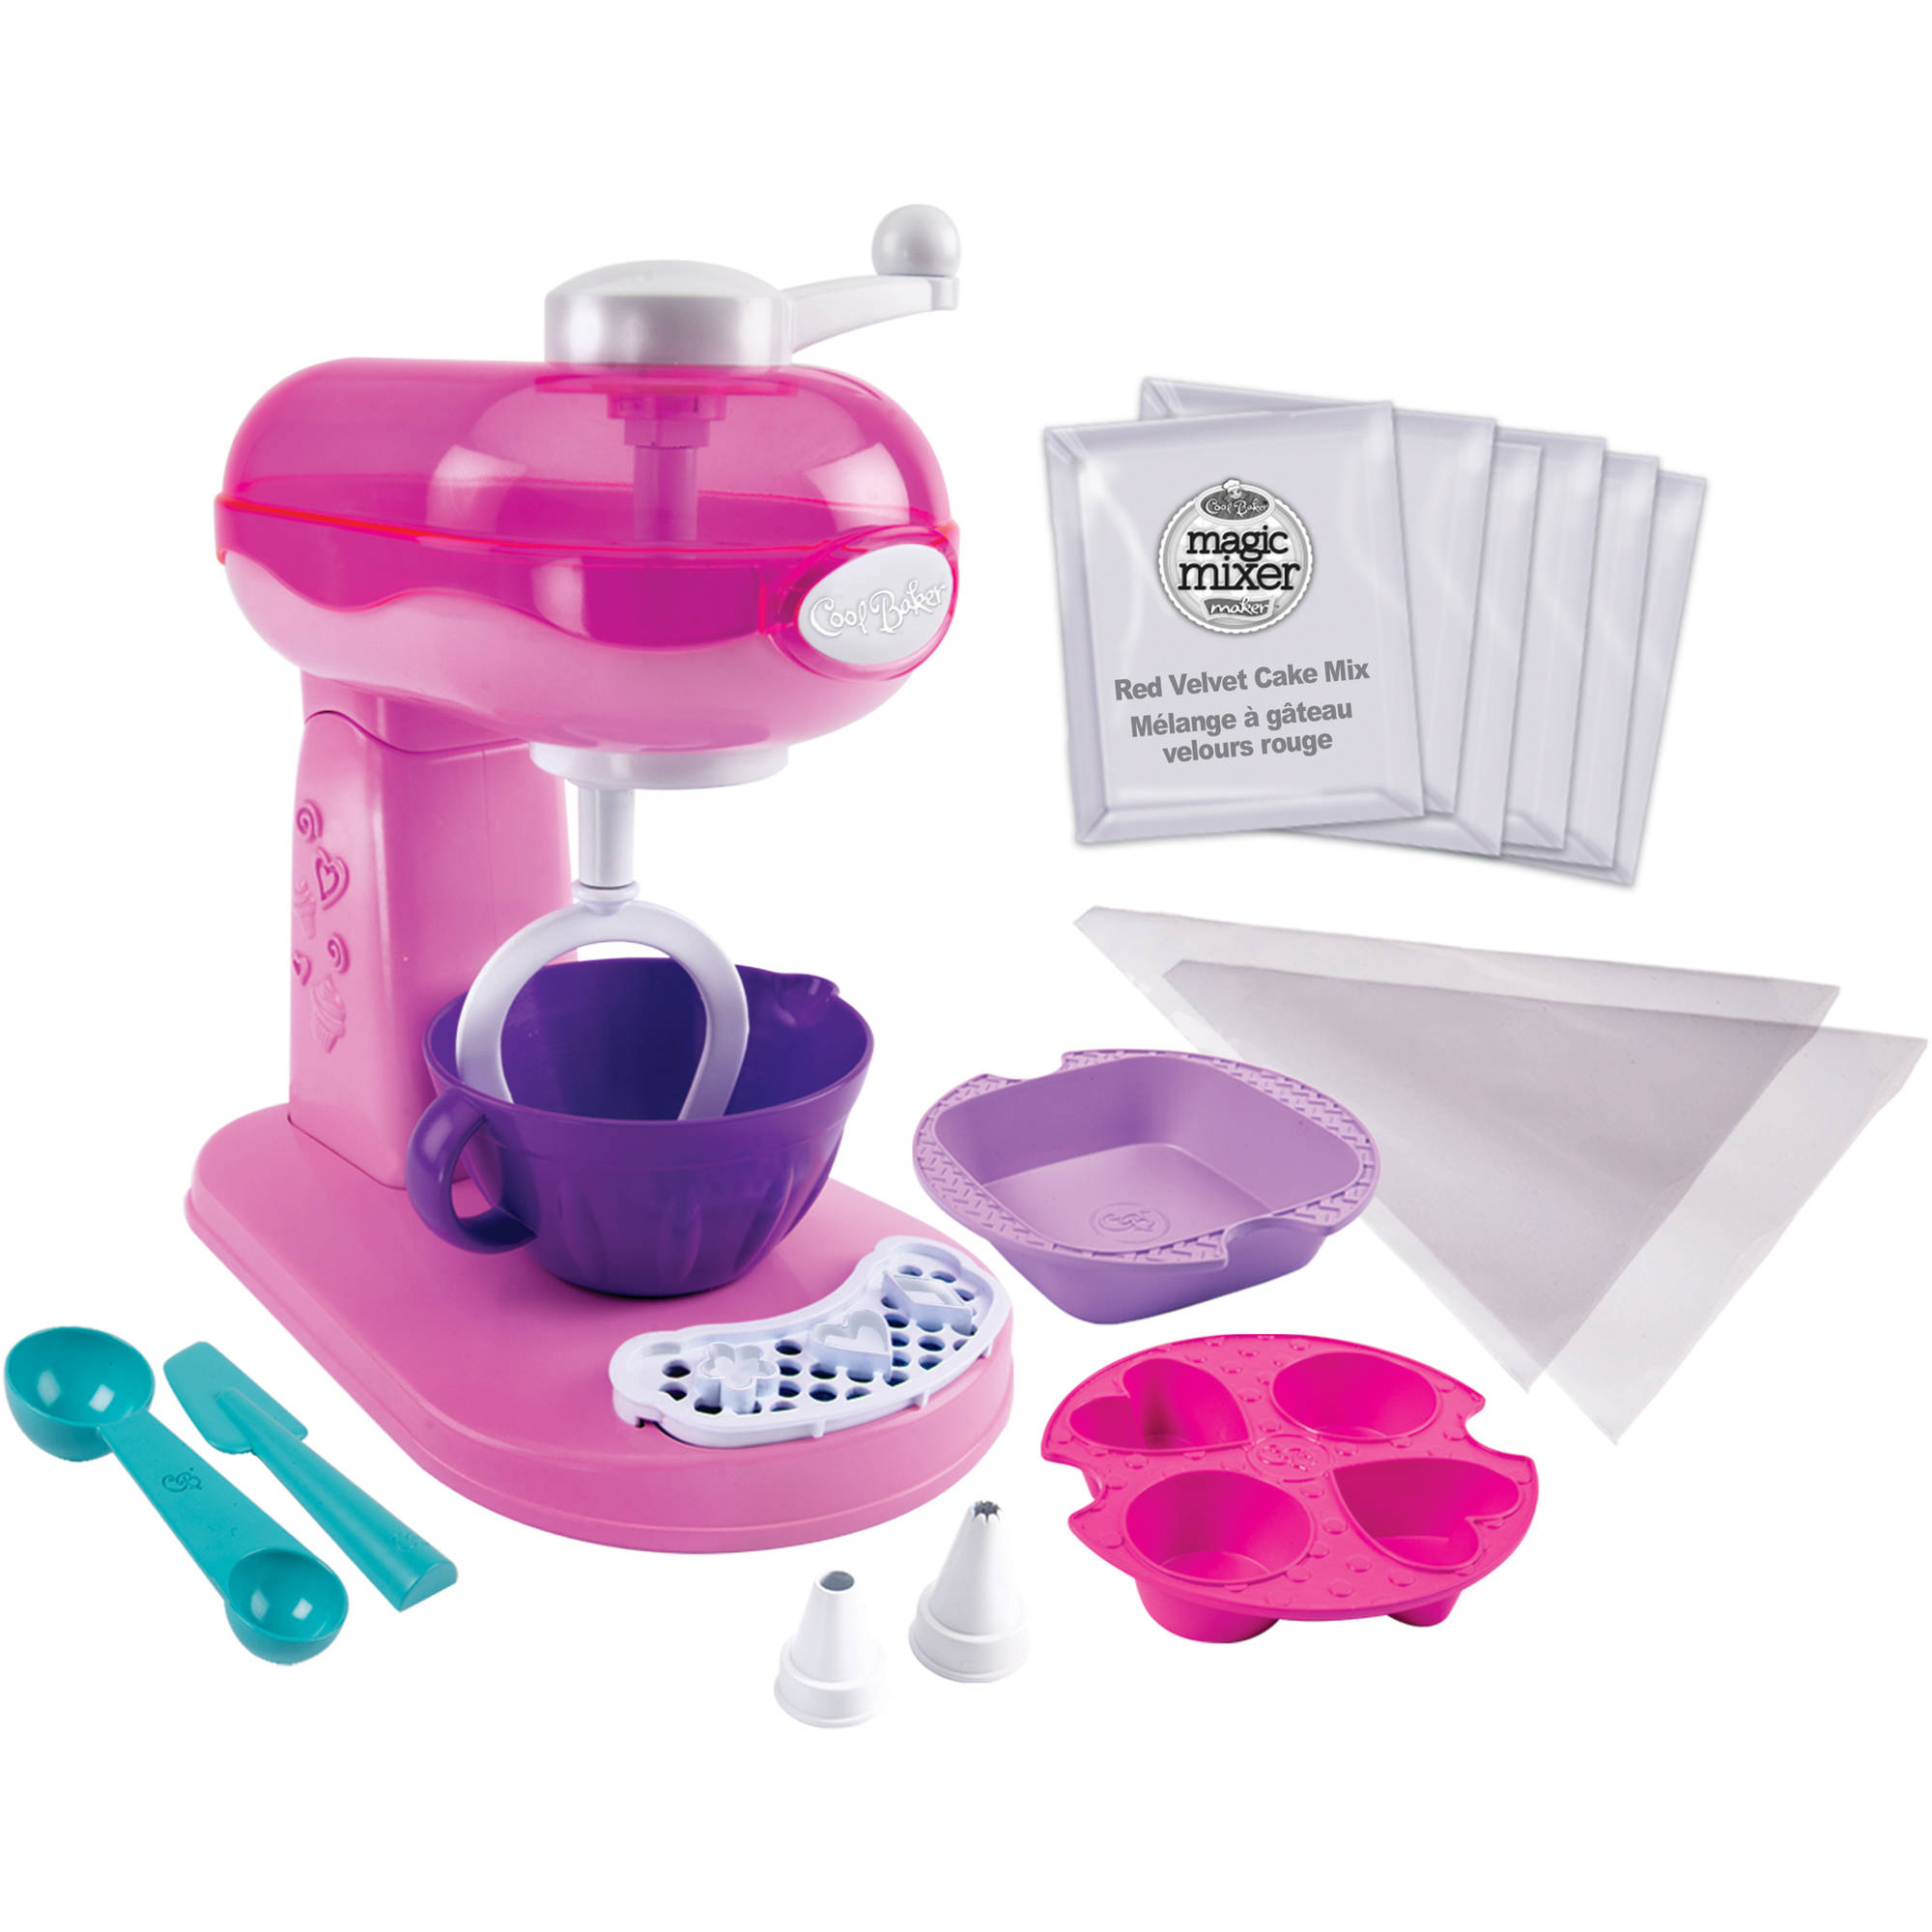 Cool Baker Magic Mixer Maker, Pink, Walmart Exclusive